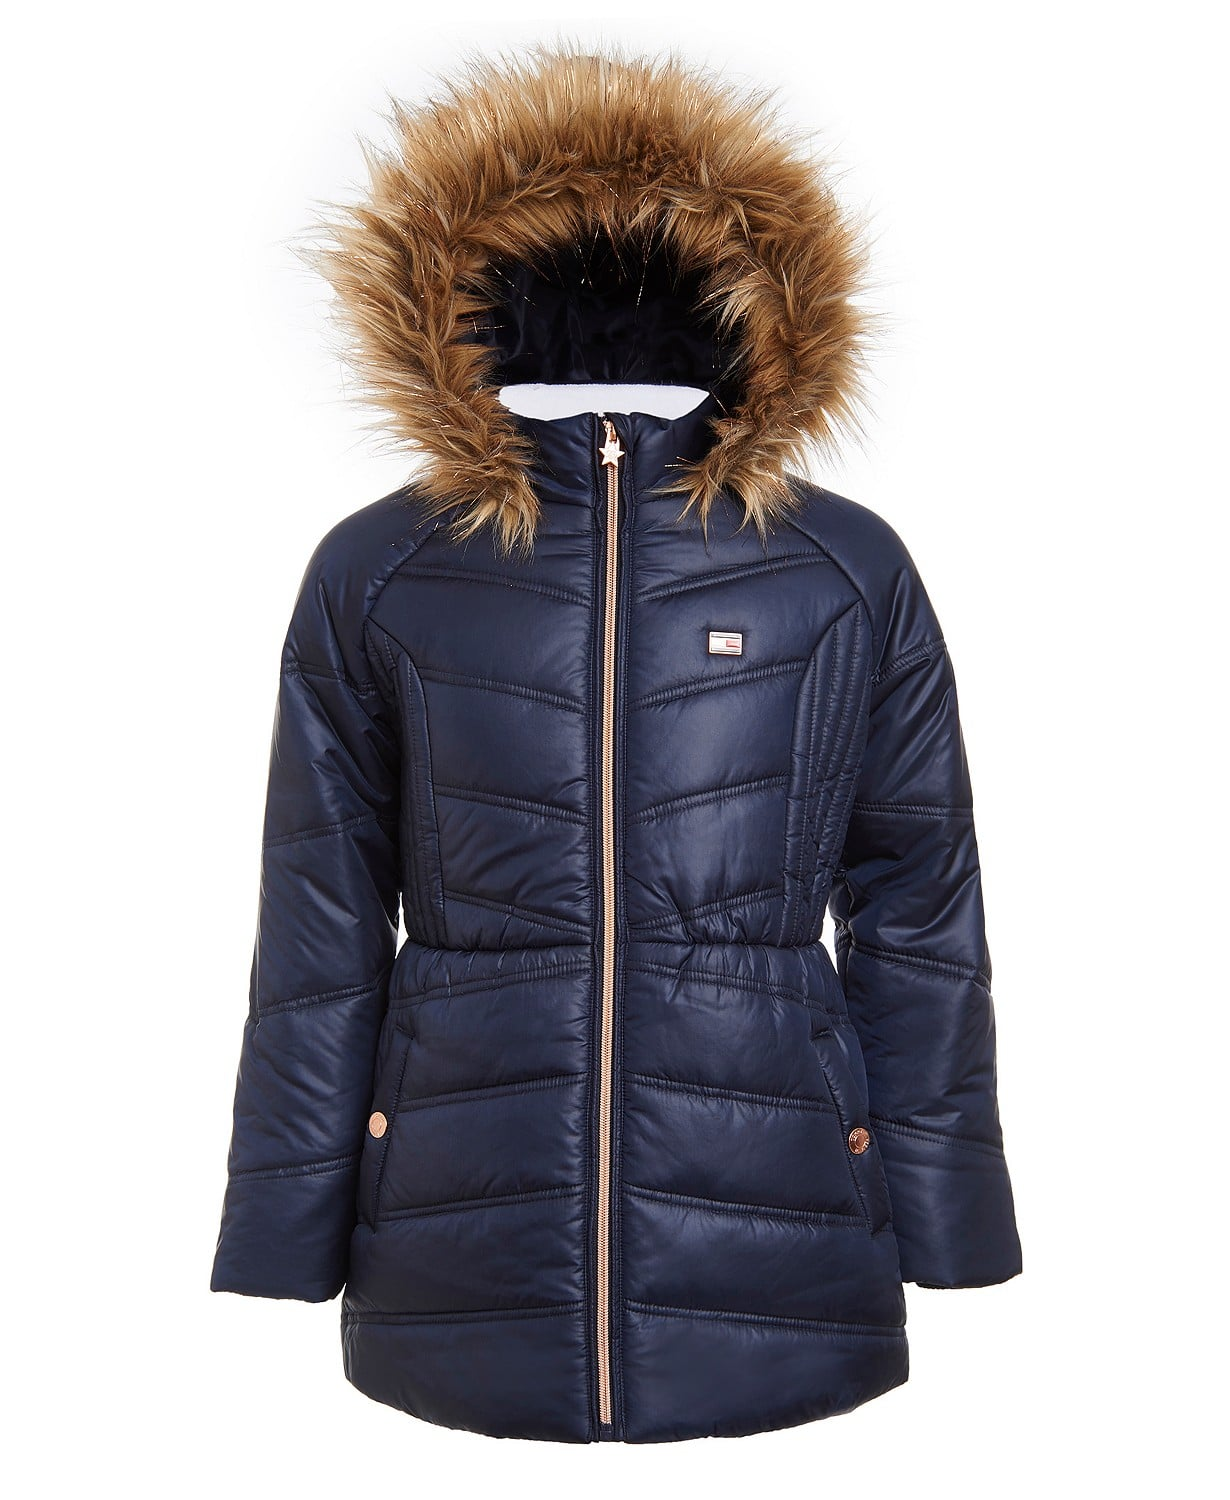 Tommy Hilfiger Big Girls Puffer Jacket With Faux Fur Hood $27.5